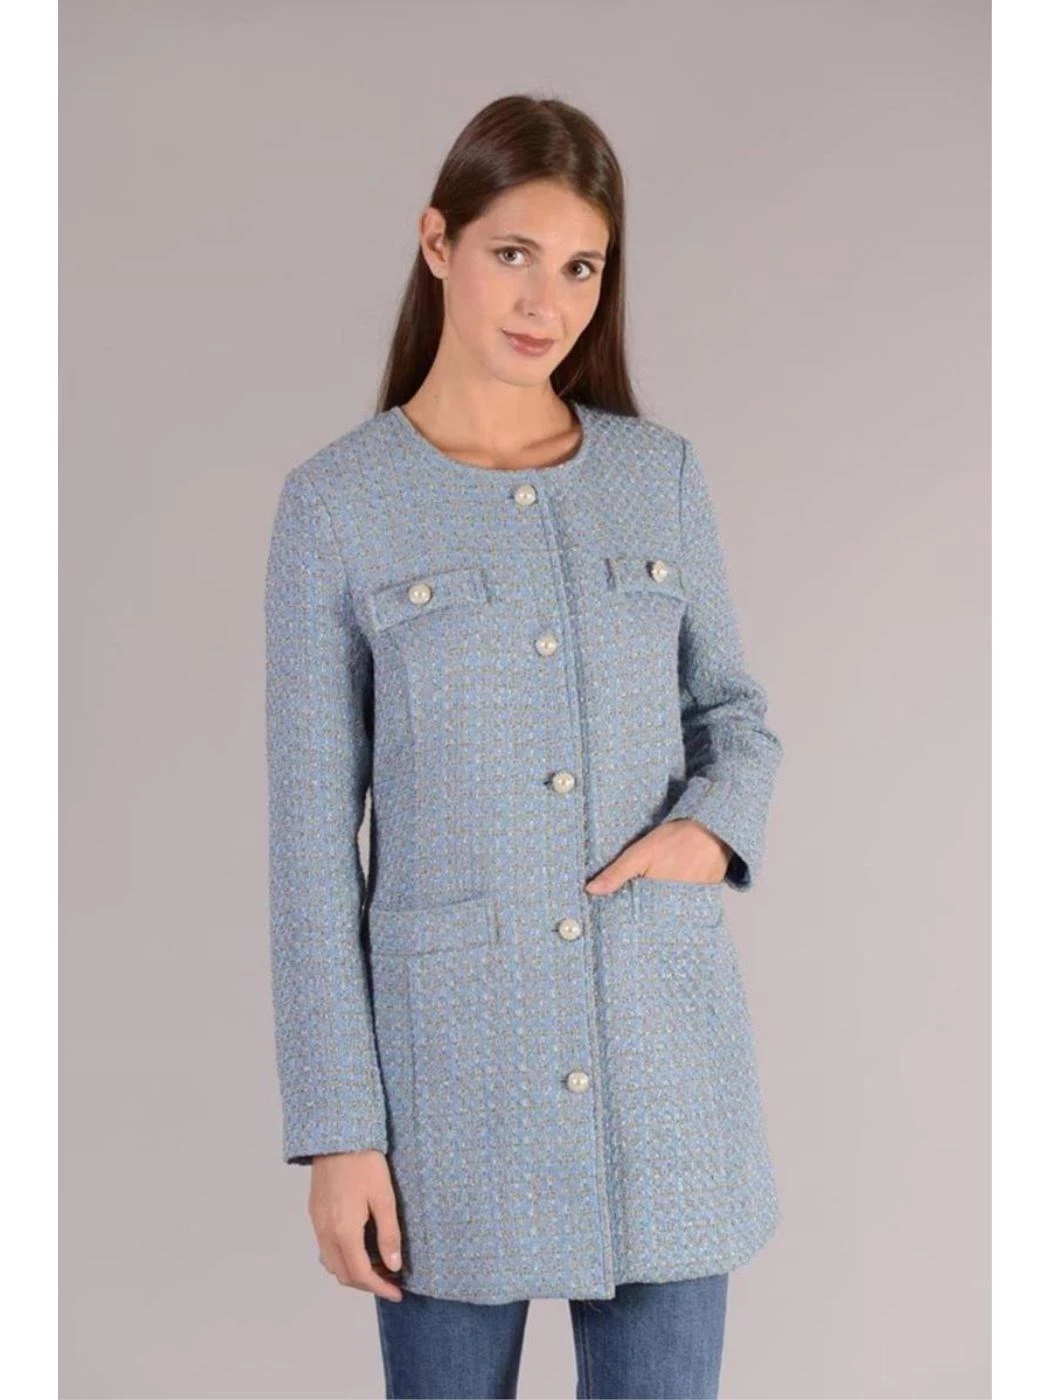 TWEED DUSTER WITH BUTTONS AND COMFORTABLE POCKETS